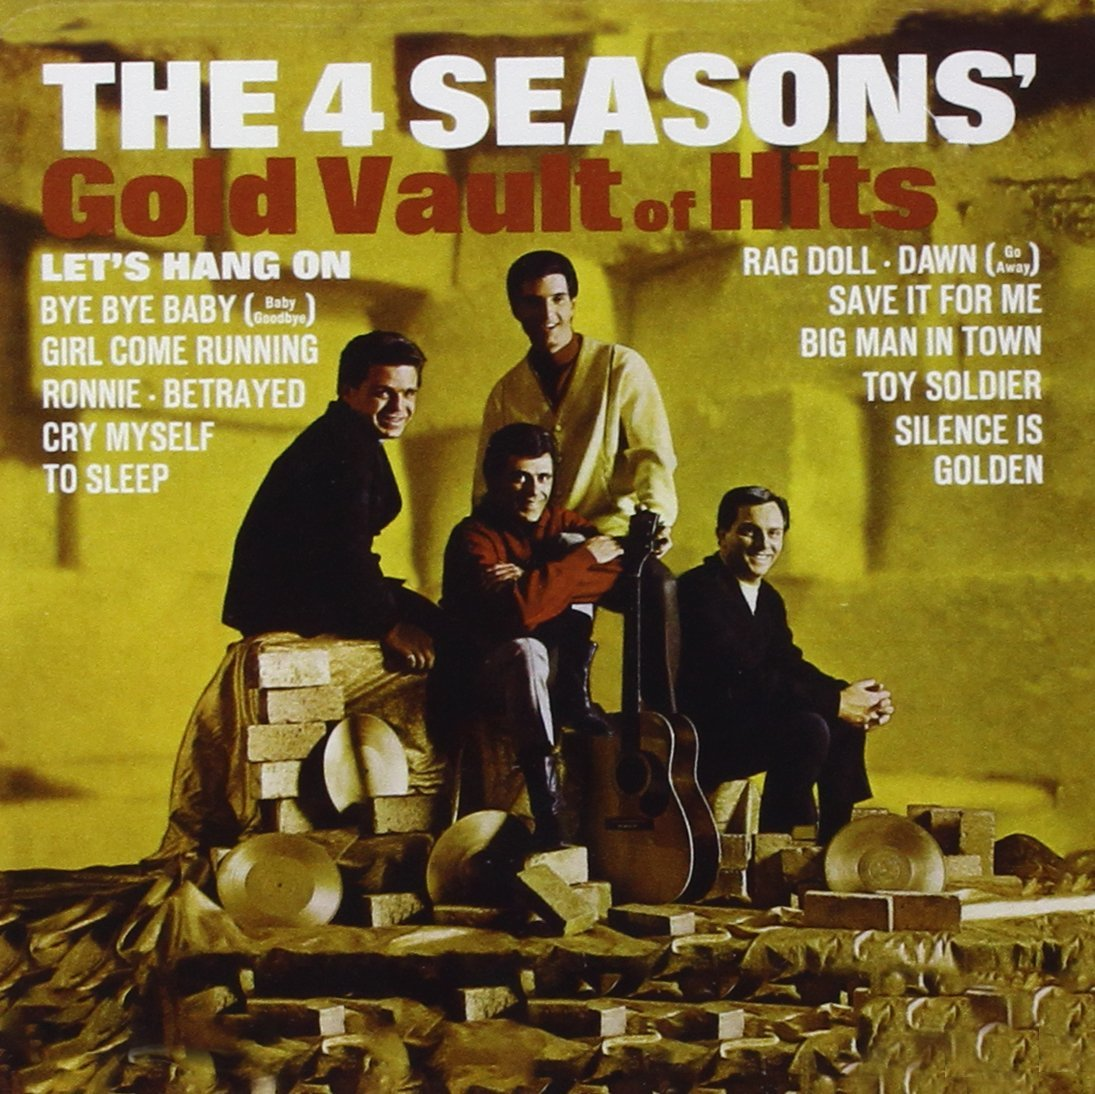 Rock On Vinyl: The 4 Seasons